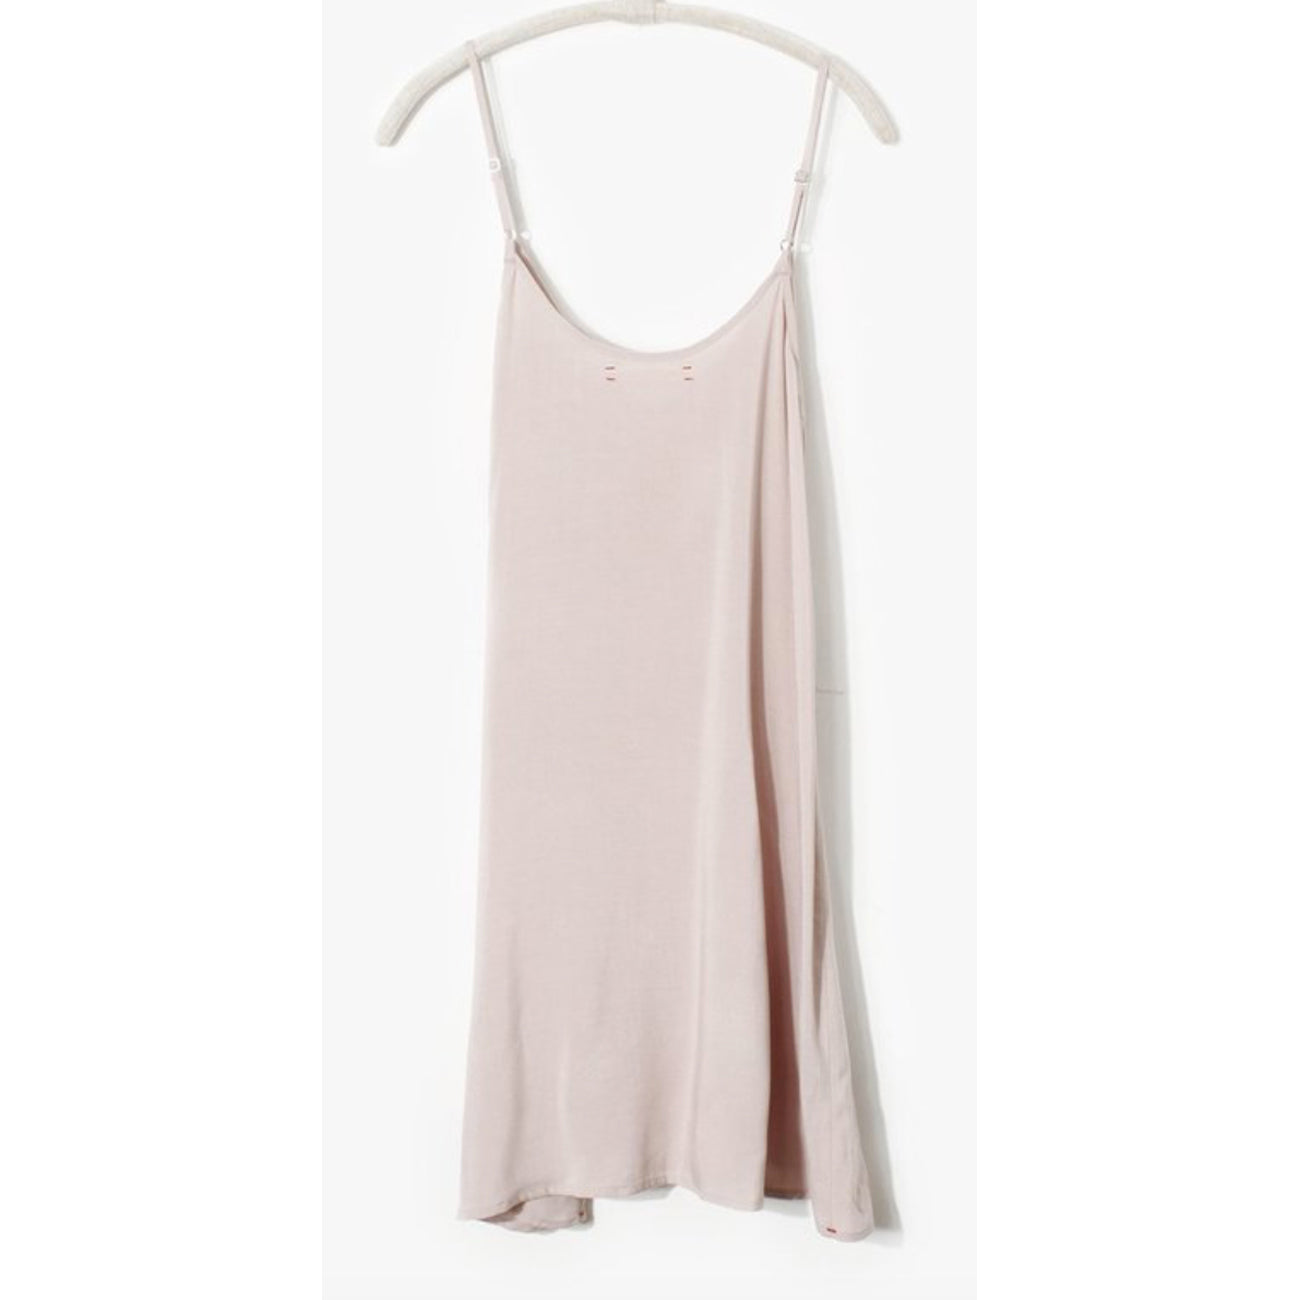 Xirena Linden Slip Dress in Nude